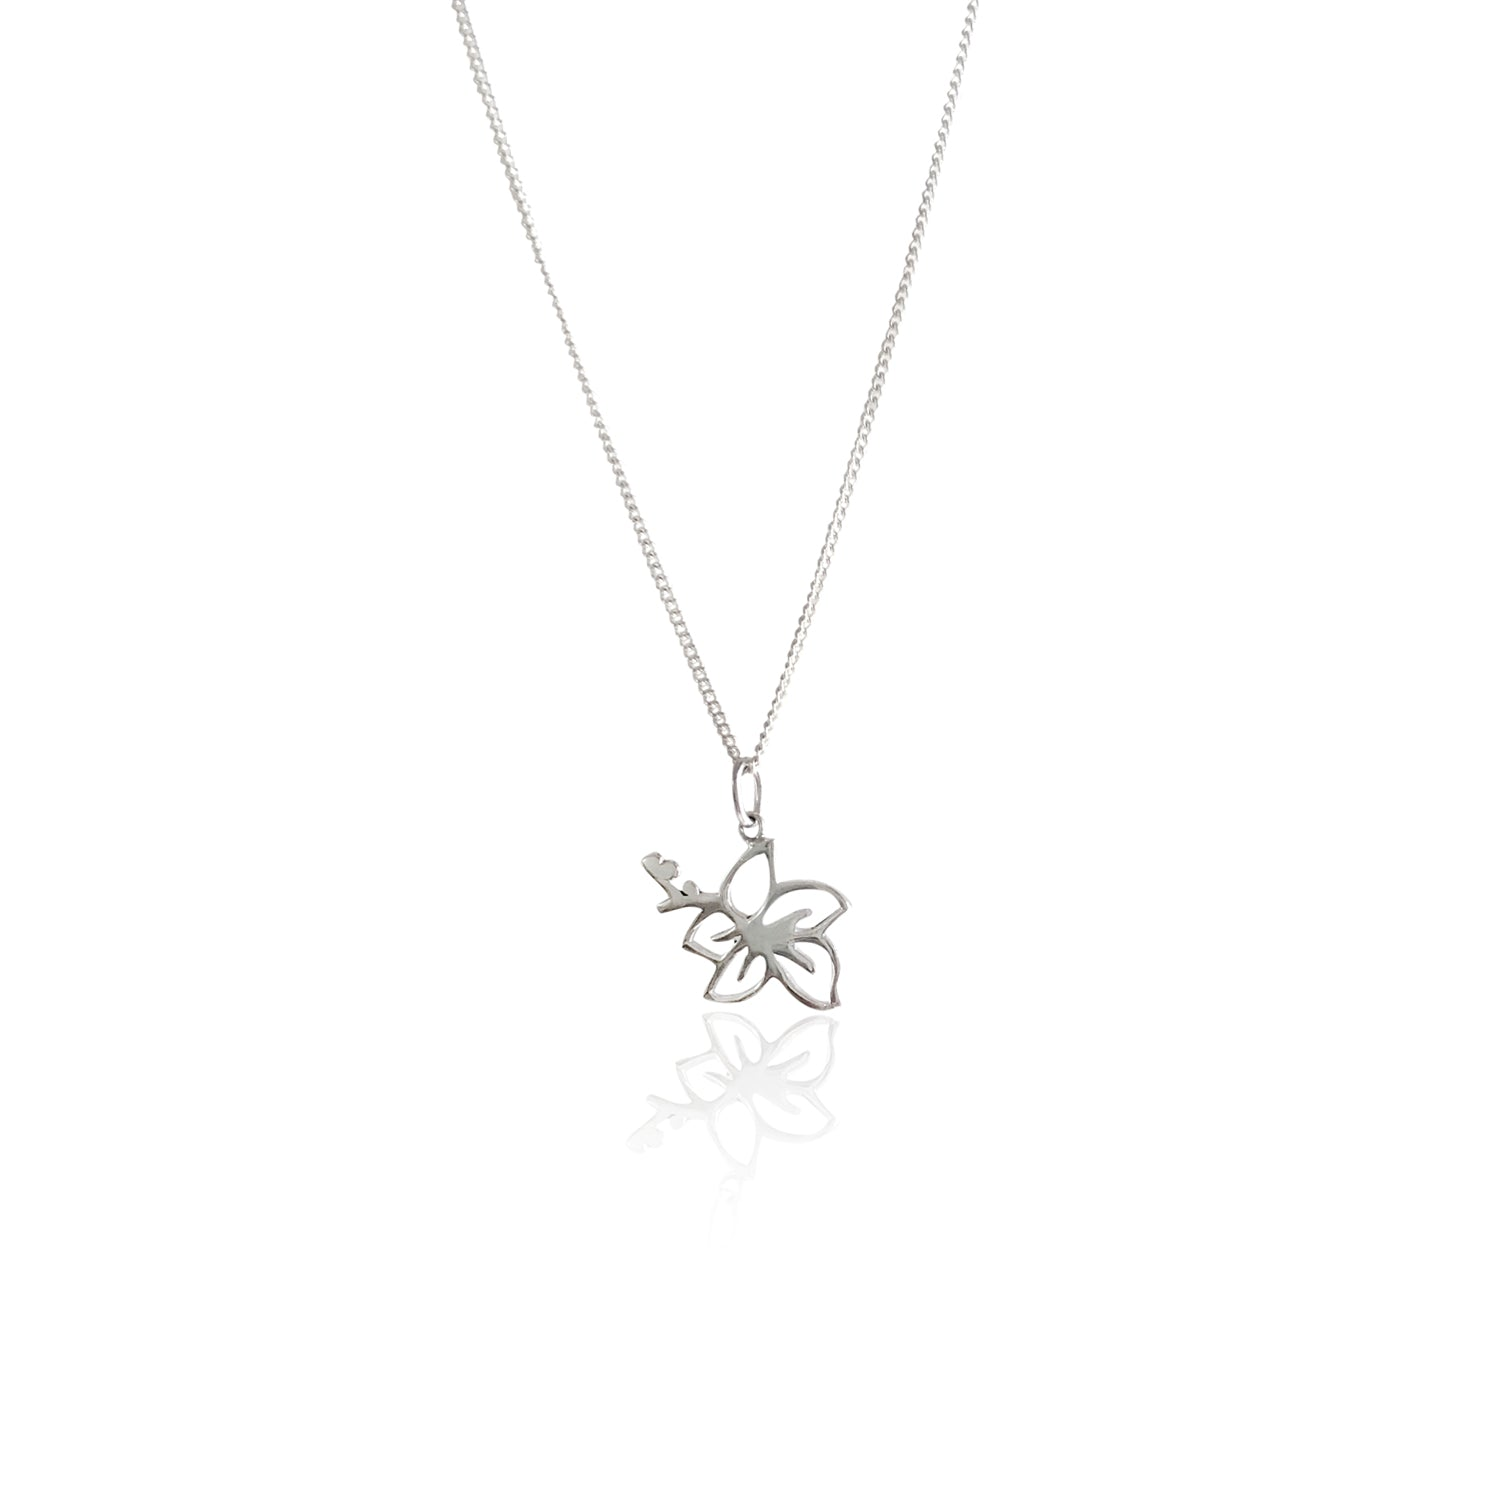 GOLDFISH KISS x LA LUNA ROSE HIBISCUS FLOWER NECKLACE (Silver)